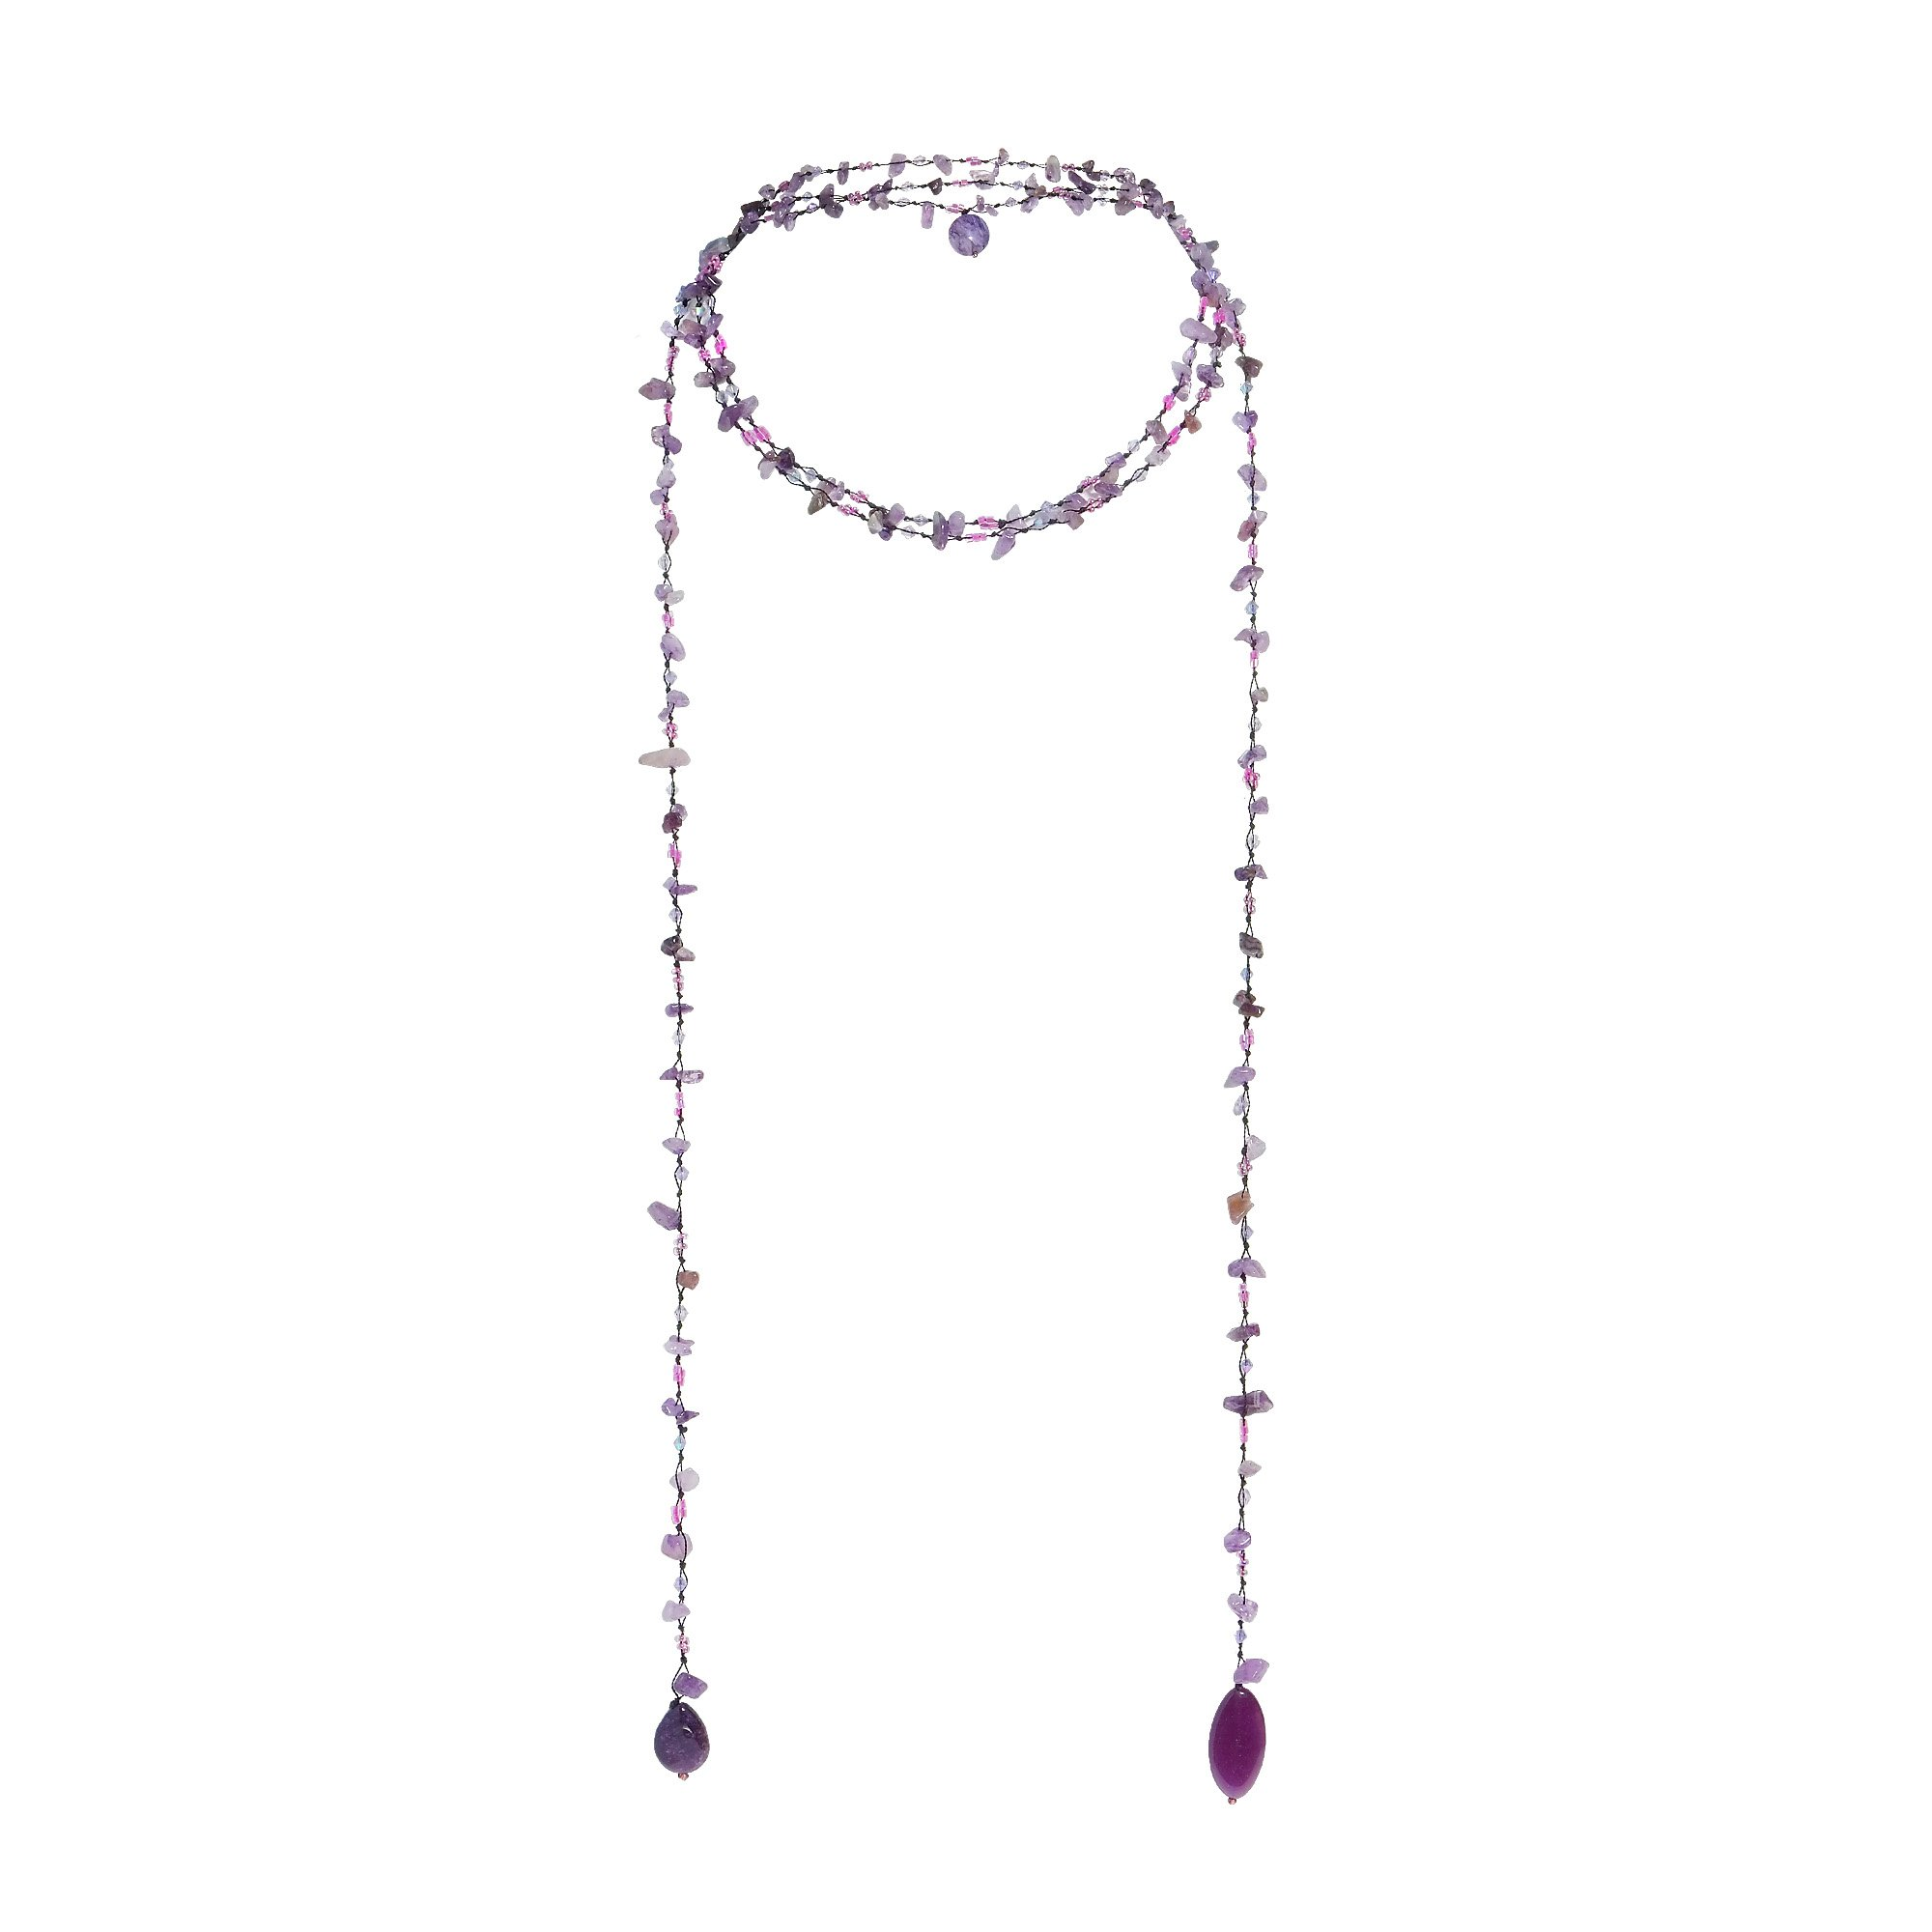 Sparkling Aura Simulated Amethyst & Reconstructed Agate Lariat Necklace by AeraVida (Image #5)